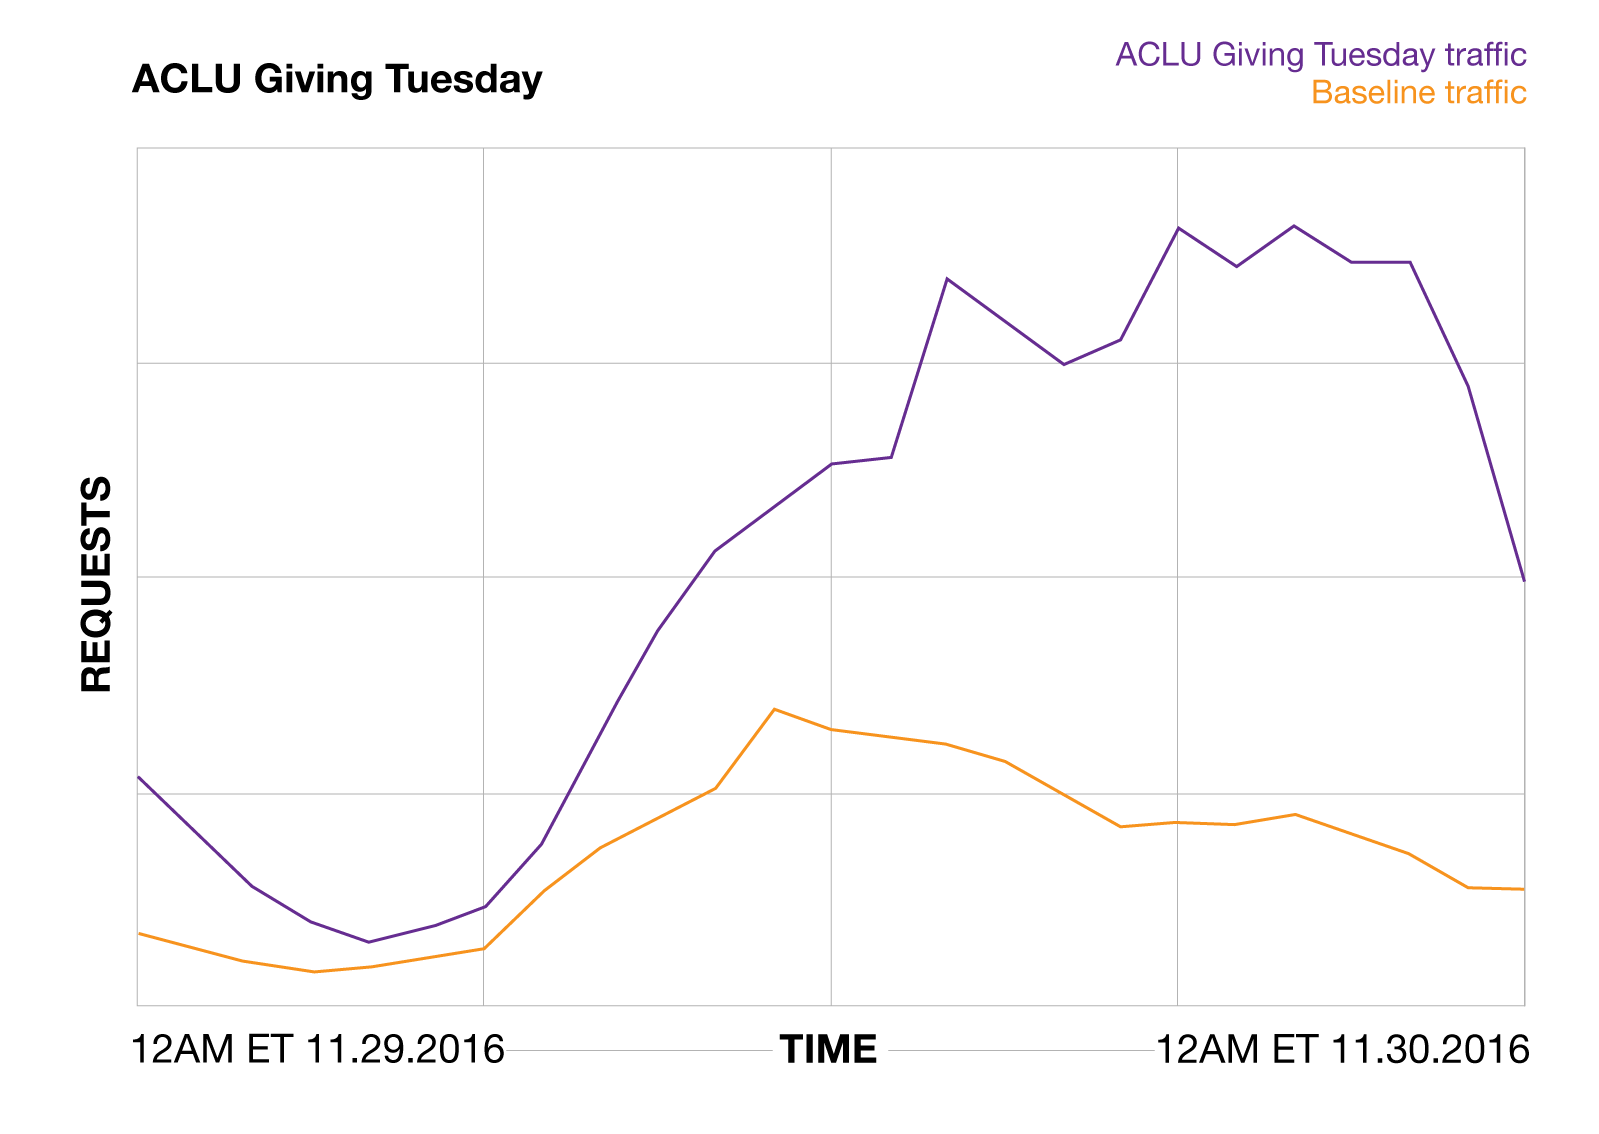 giving tuesday graphs 2016 aclu